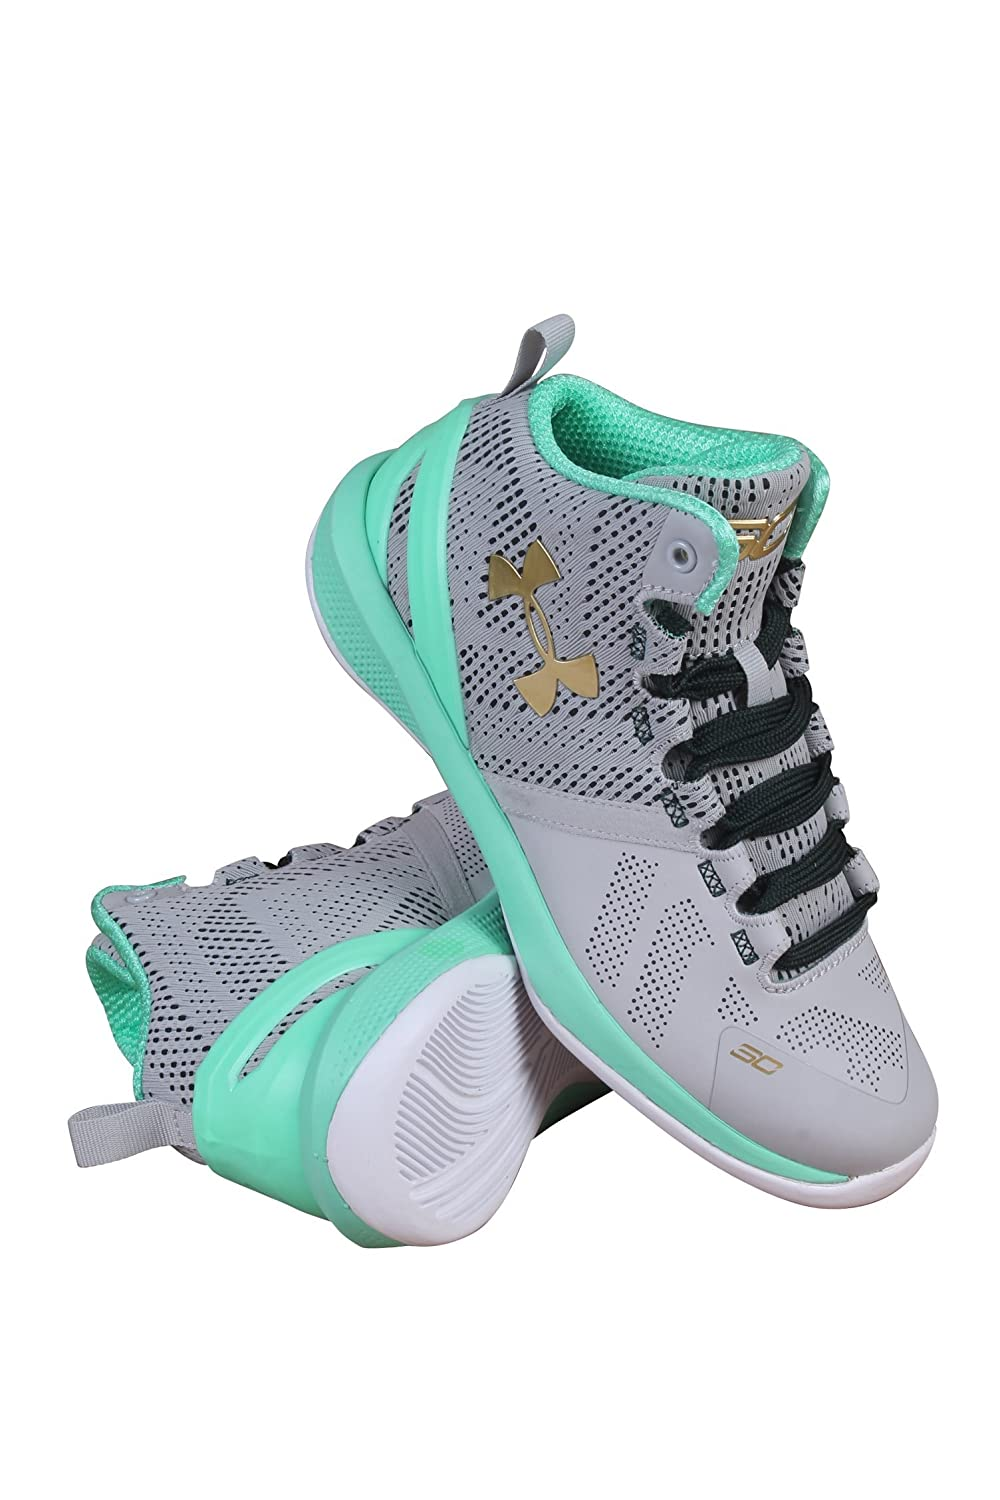 1270904-053 PRESCHOOL UA BPS CURRY 2 UNDER ARMOUR GREY / TEAL